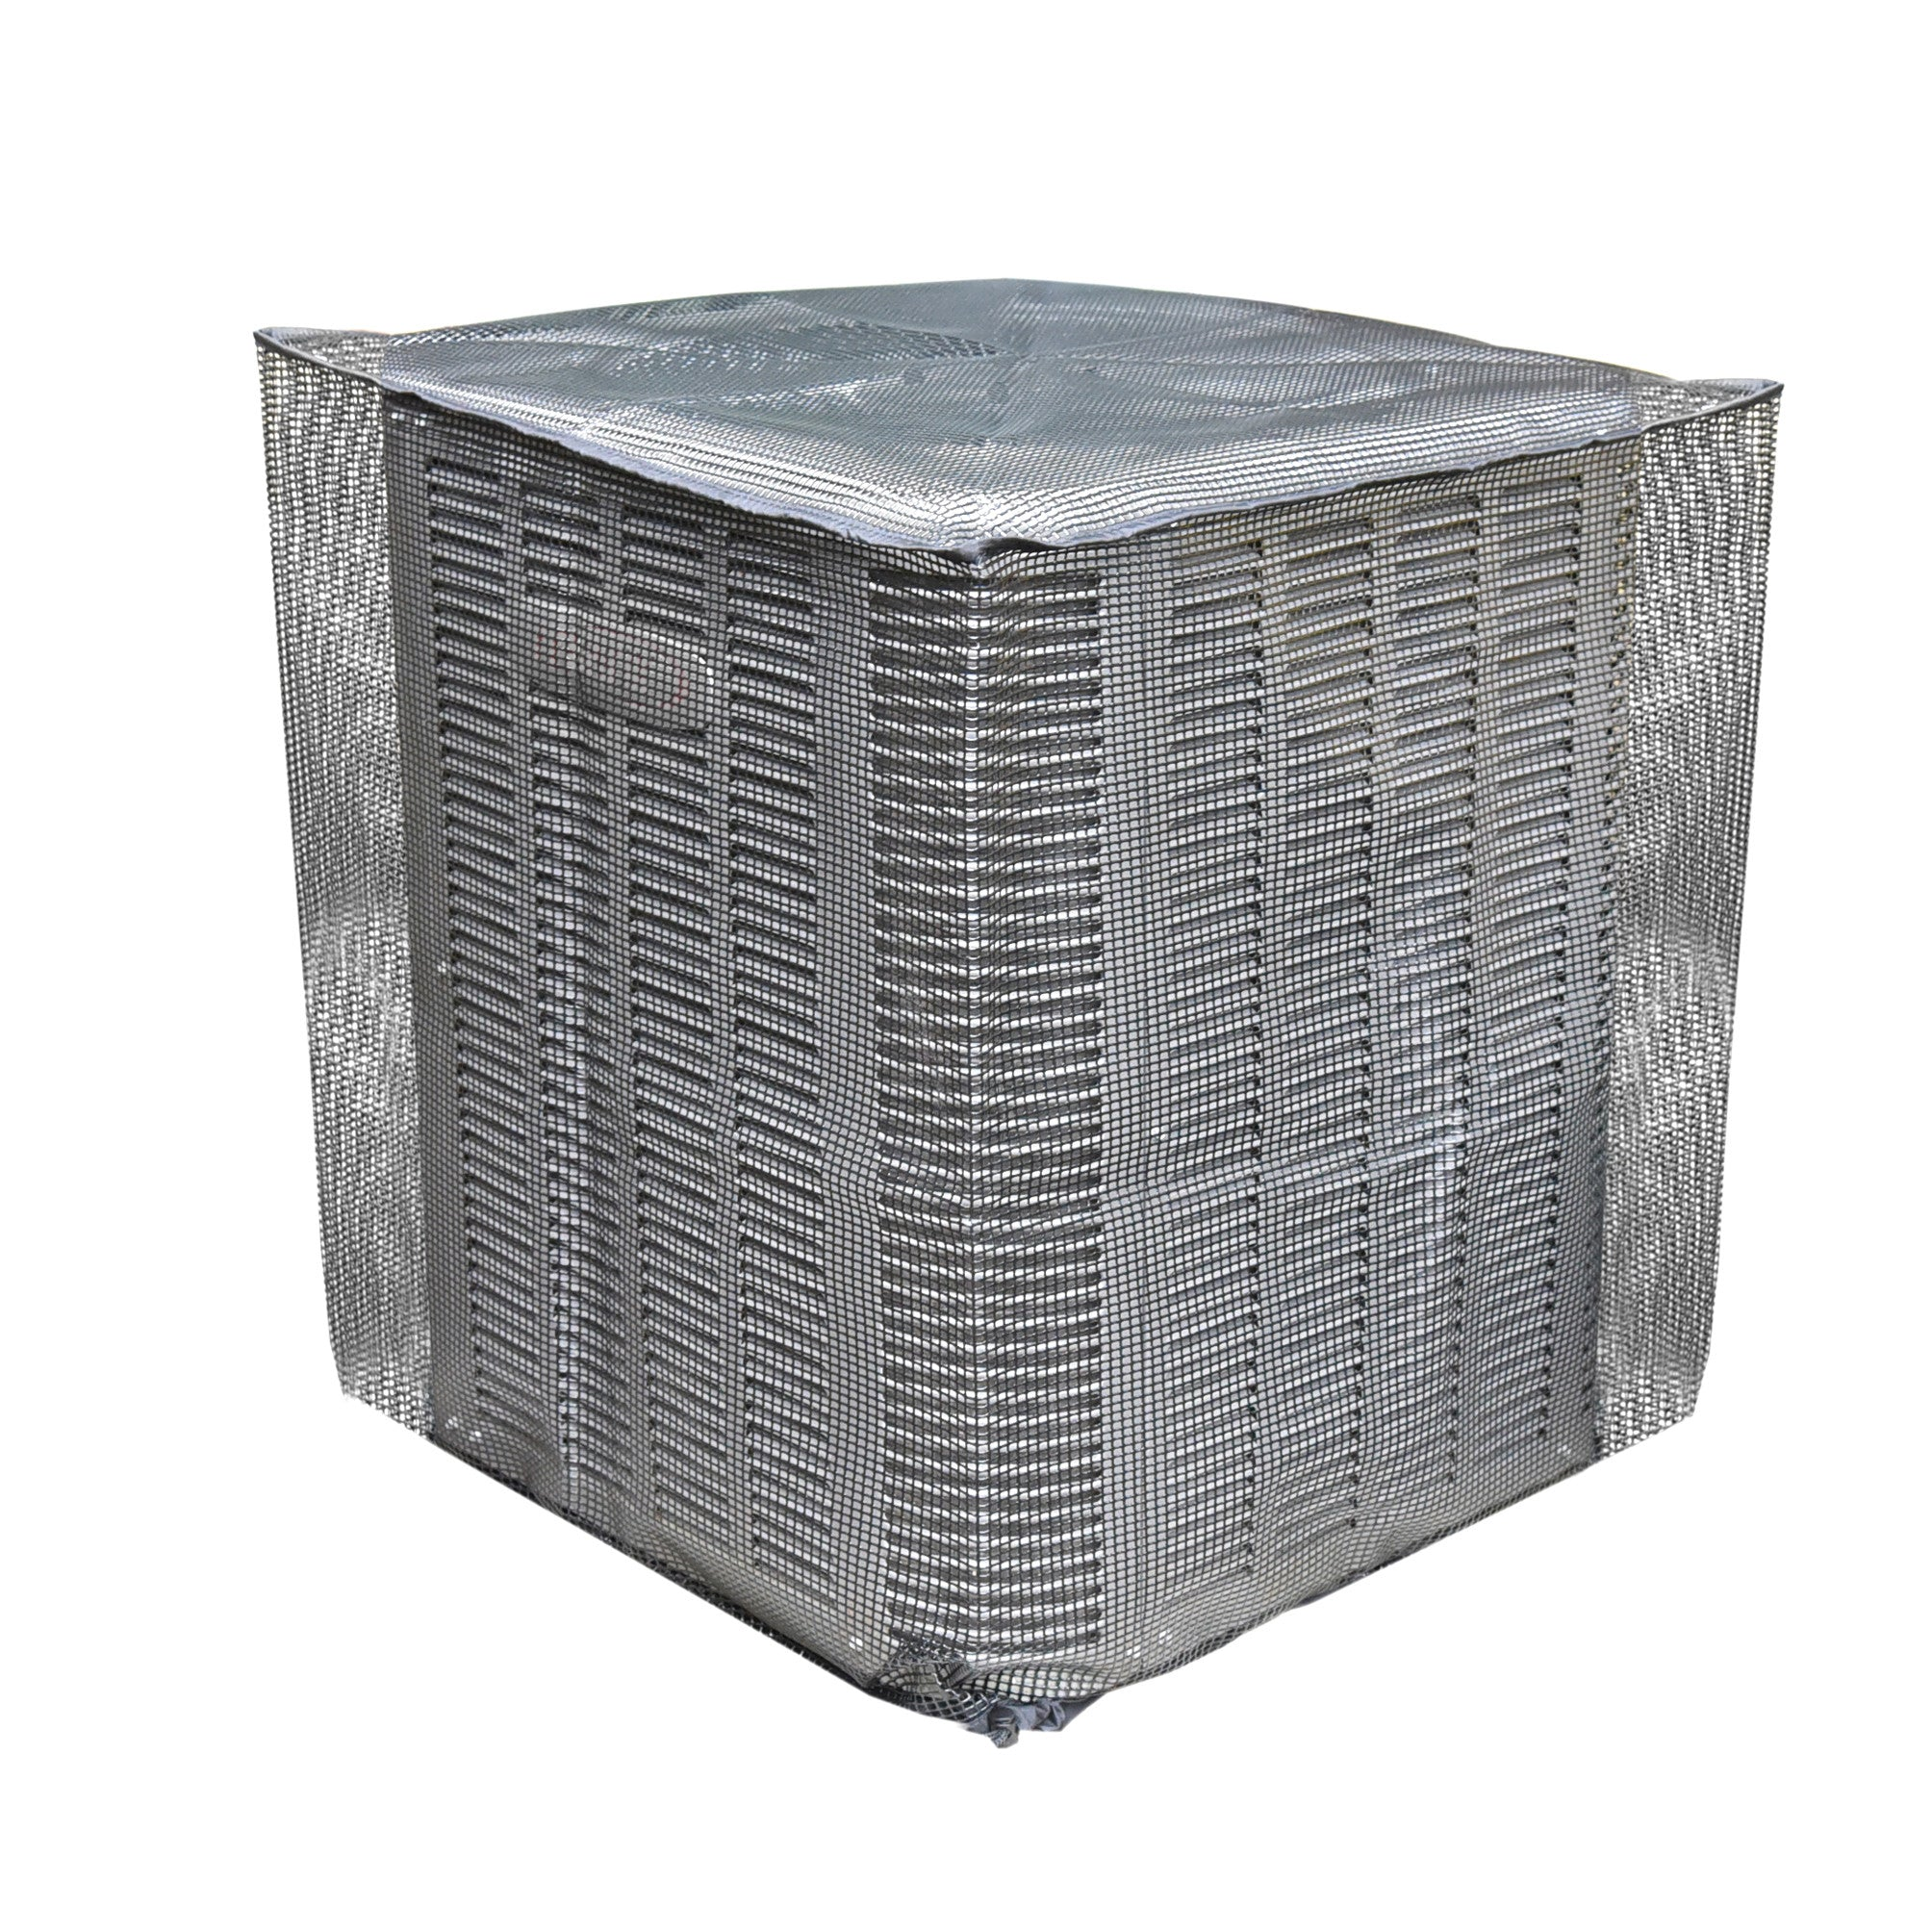 ac cover on air unit - Air Conditioner Covers